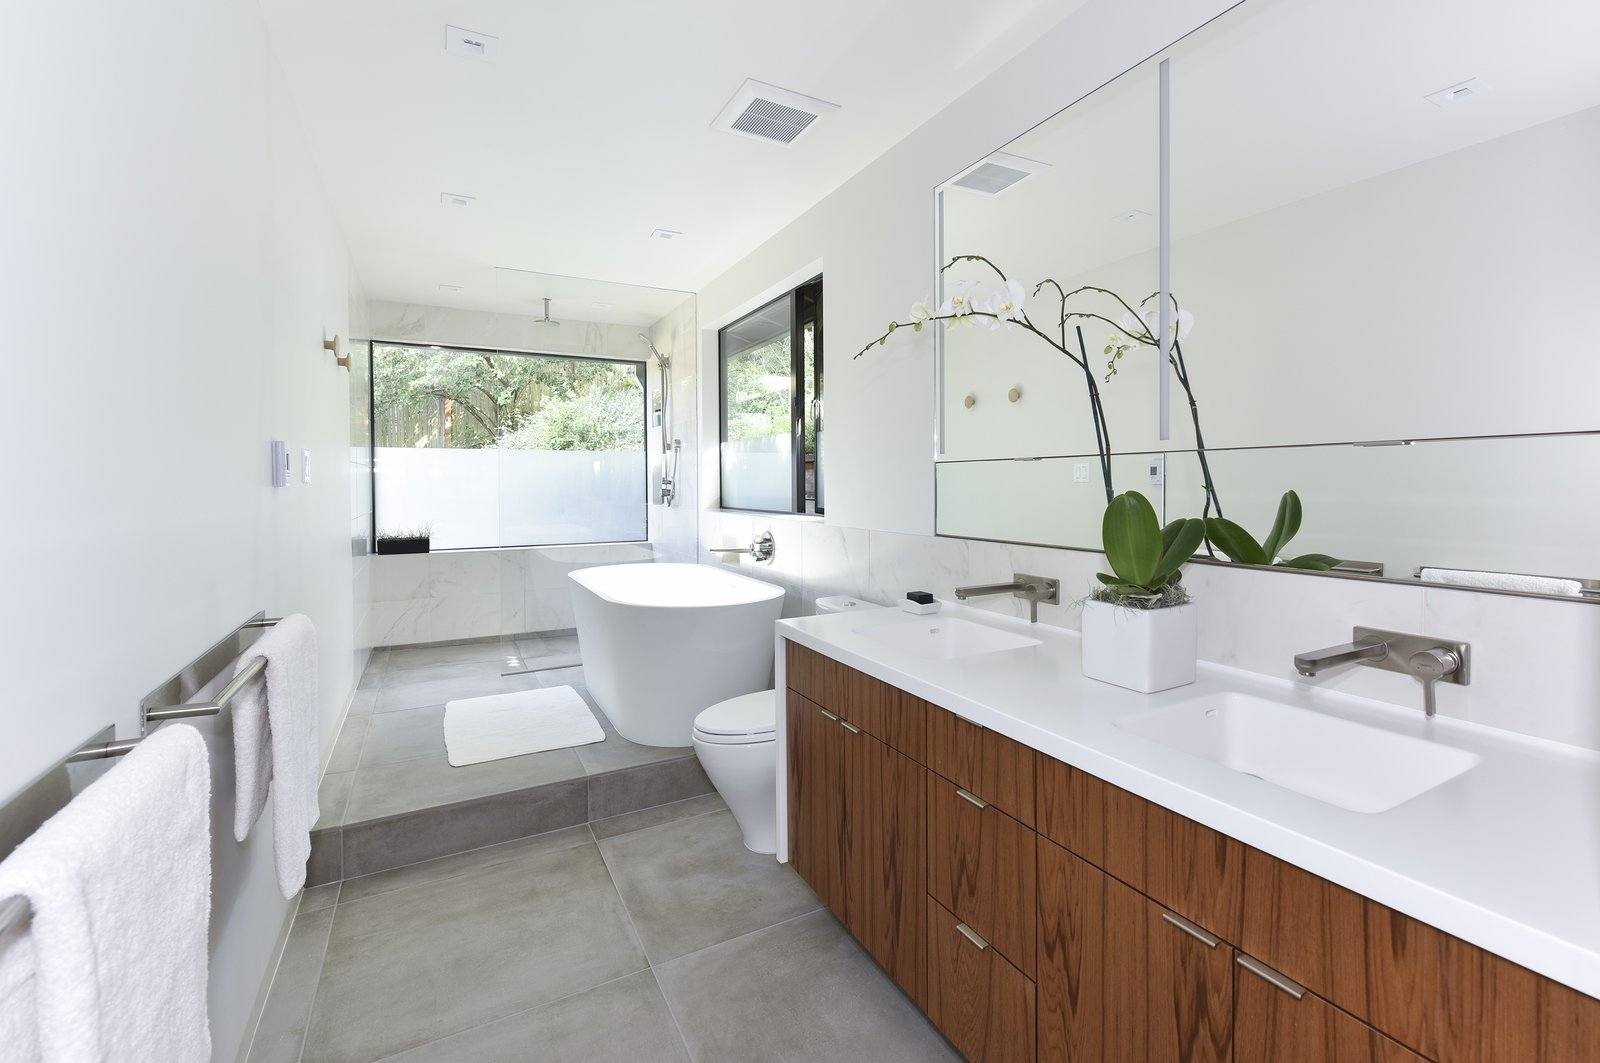 Photo 1 Of 5 In Contemporary Master Bathroom Remodel Dwell